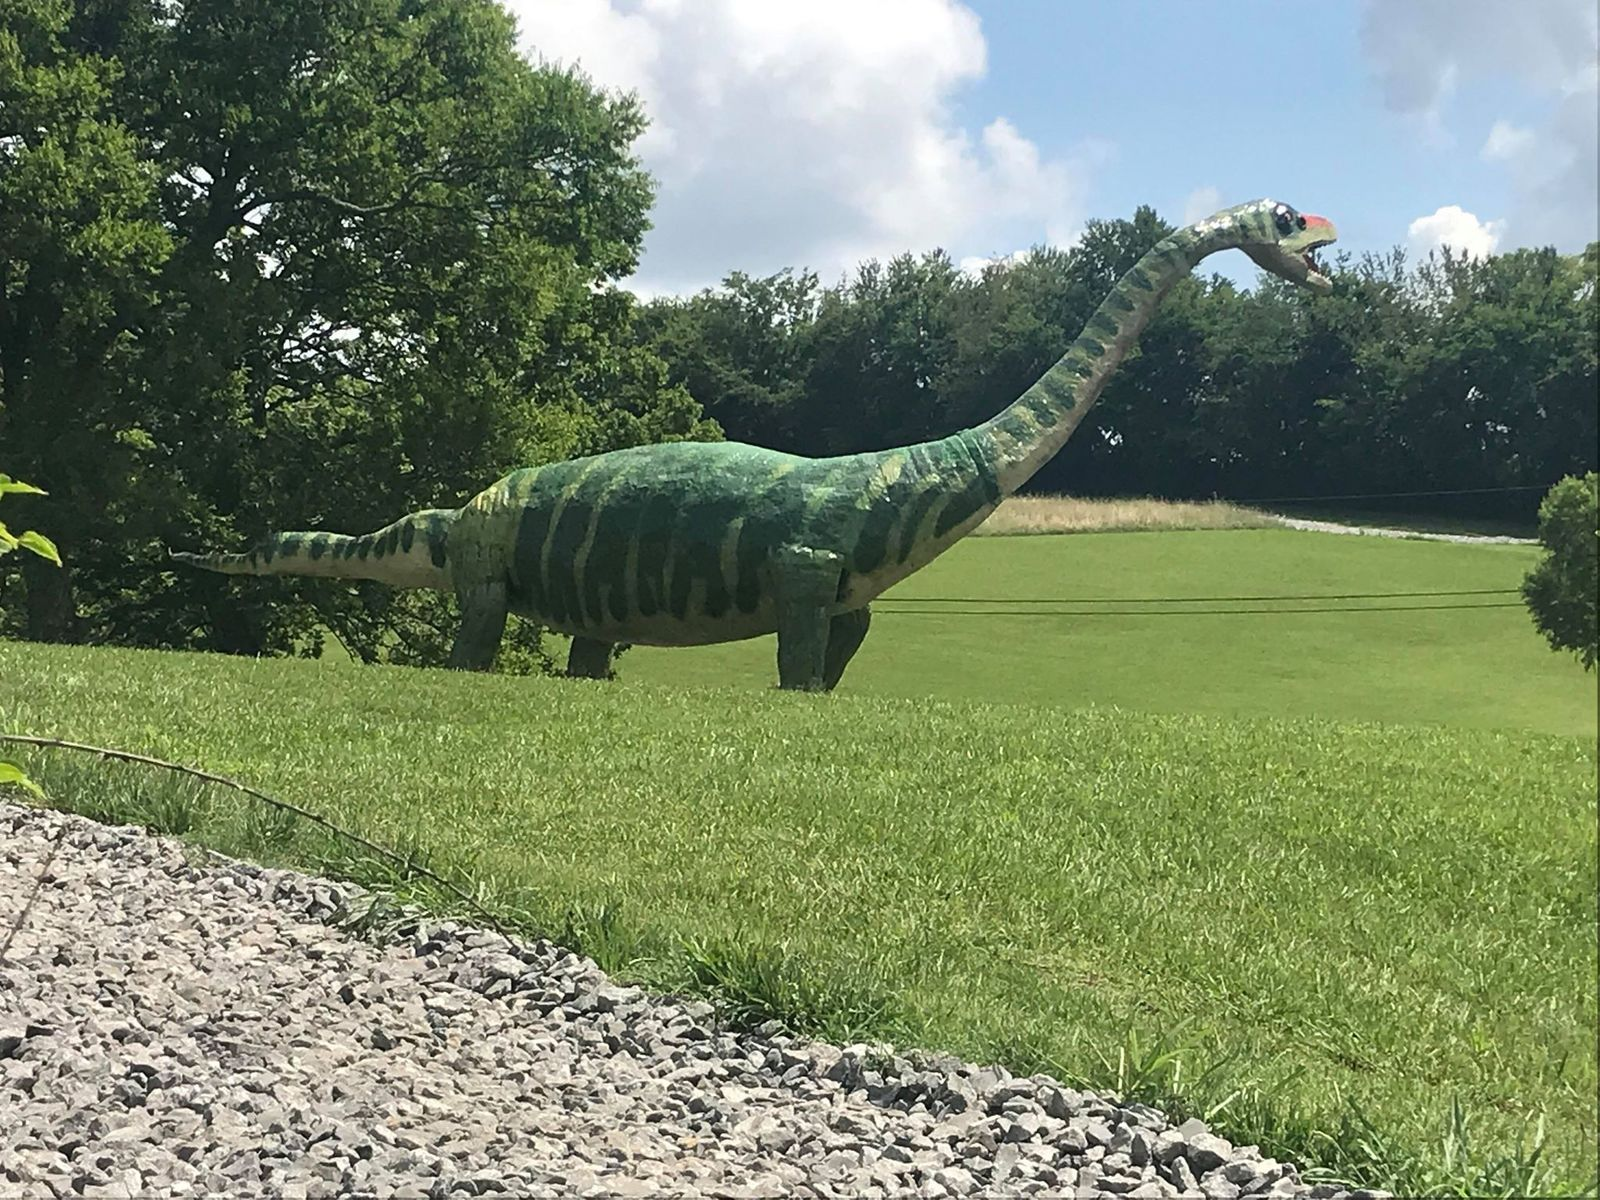 Crocs founder George Boedecker displays fake dinosaurs and other wildlife on his property in Bellevue, Tenn. (Image: WZTV)